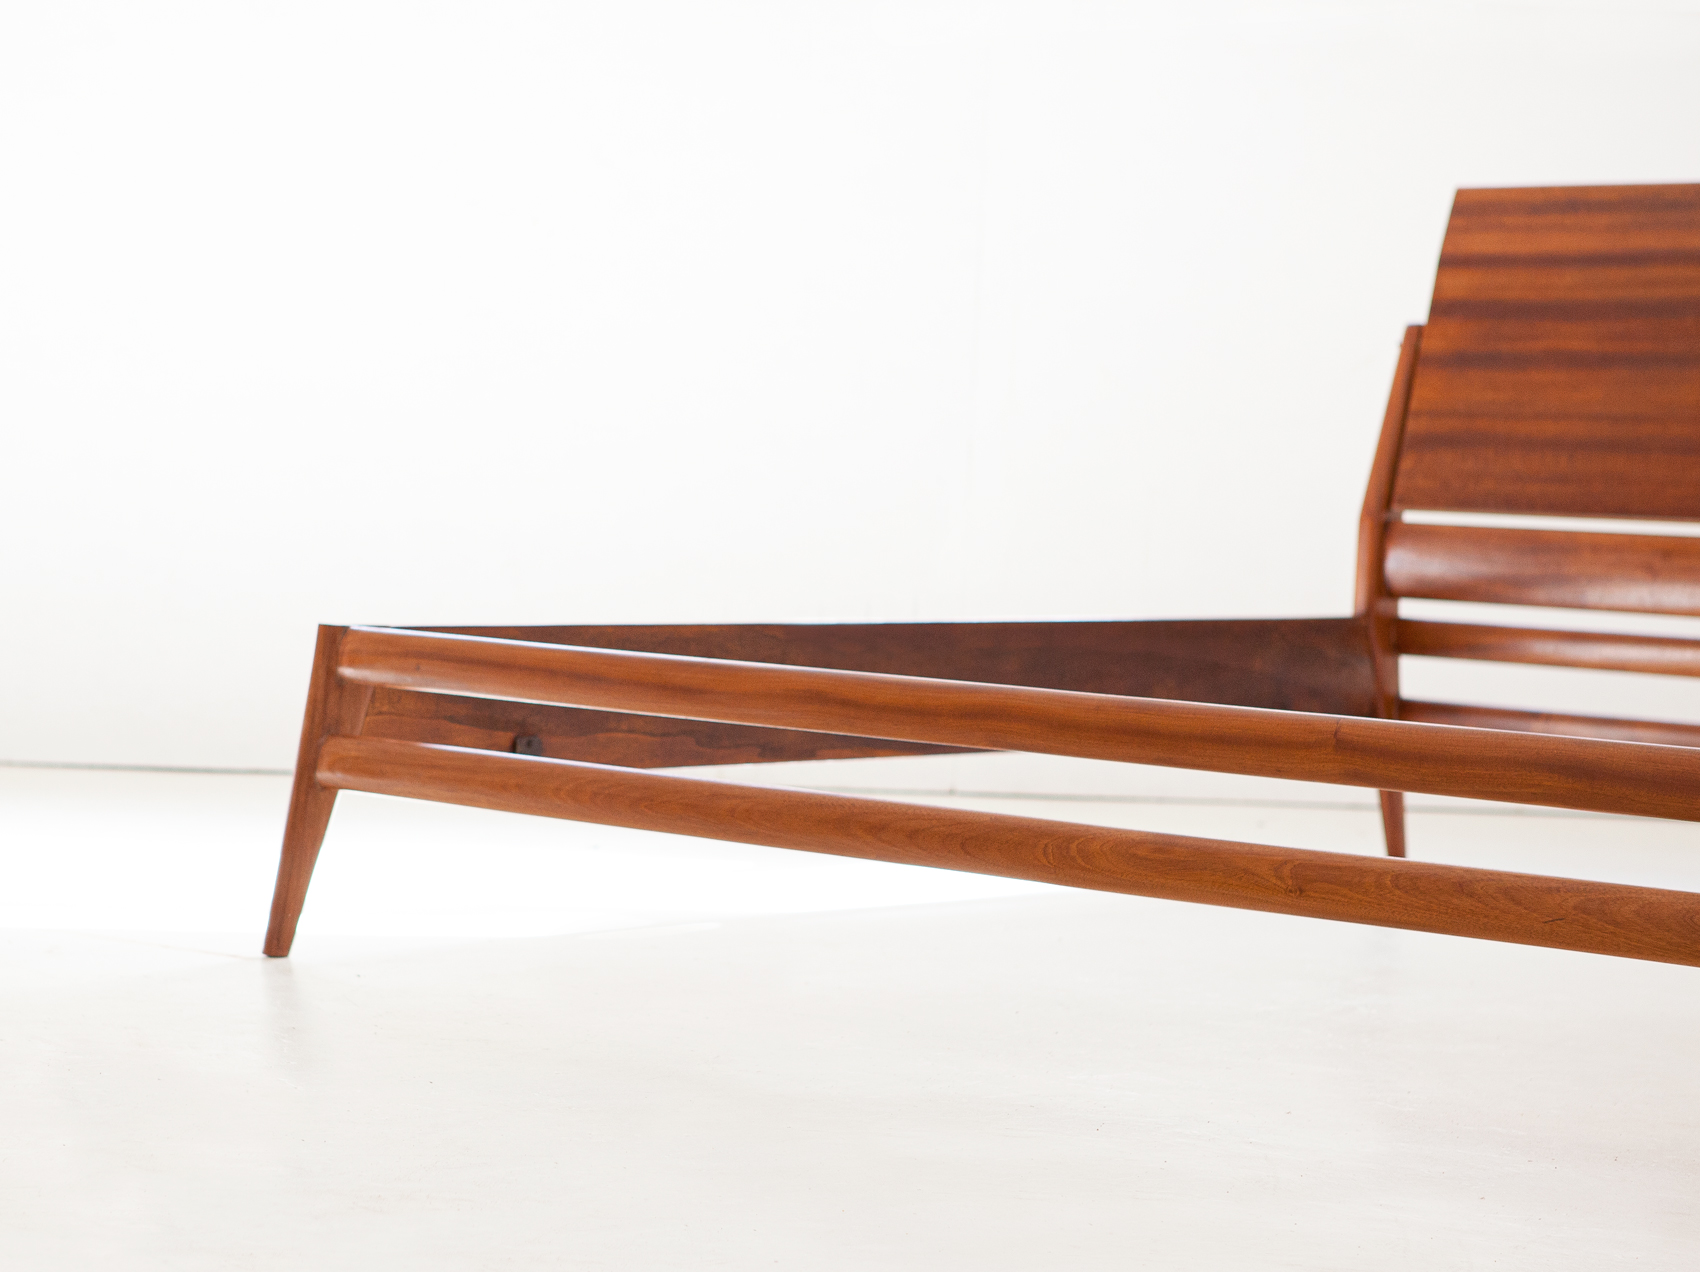 1950s-mahogany-double-bed-by-ssilvio-cavatorta-1-of101